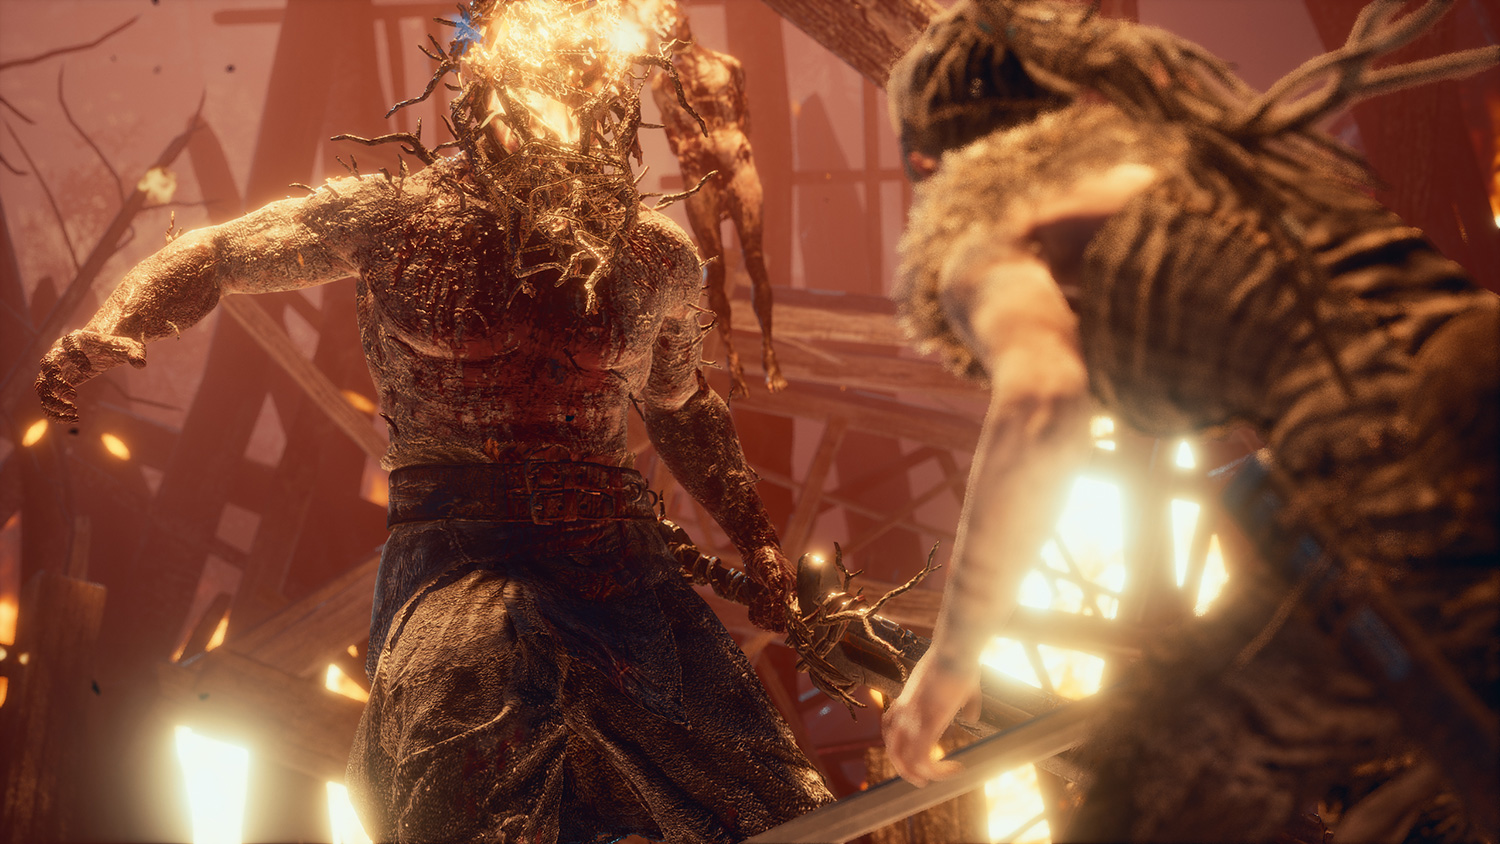 Hellblade: Senua's Sacrifice' Review | Digital Trends